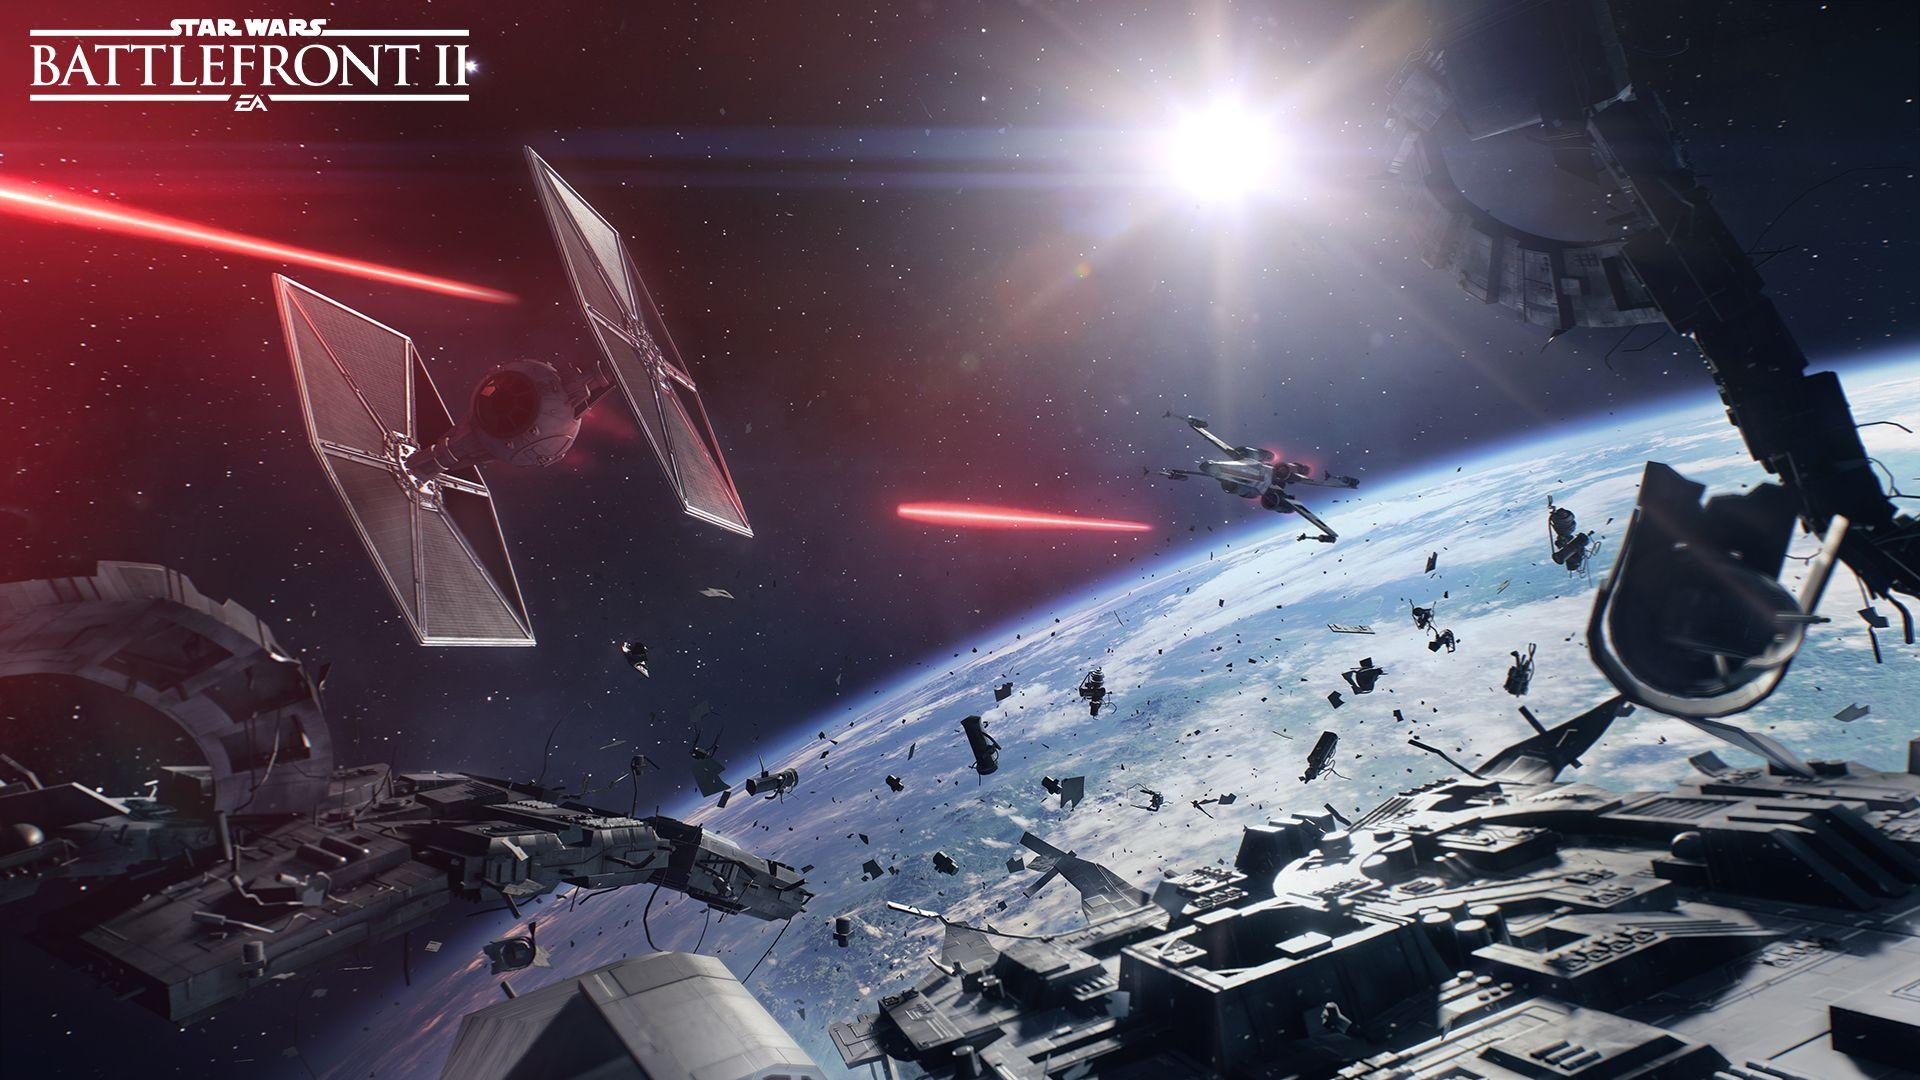 Star Wars Battlefront II (2017) Full HD Wallpaper and Background ...